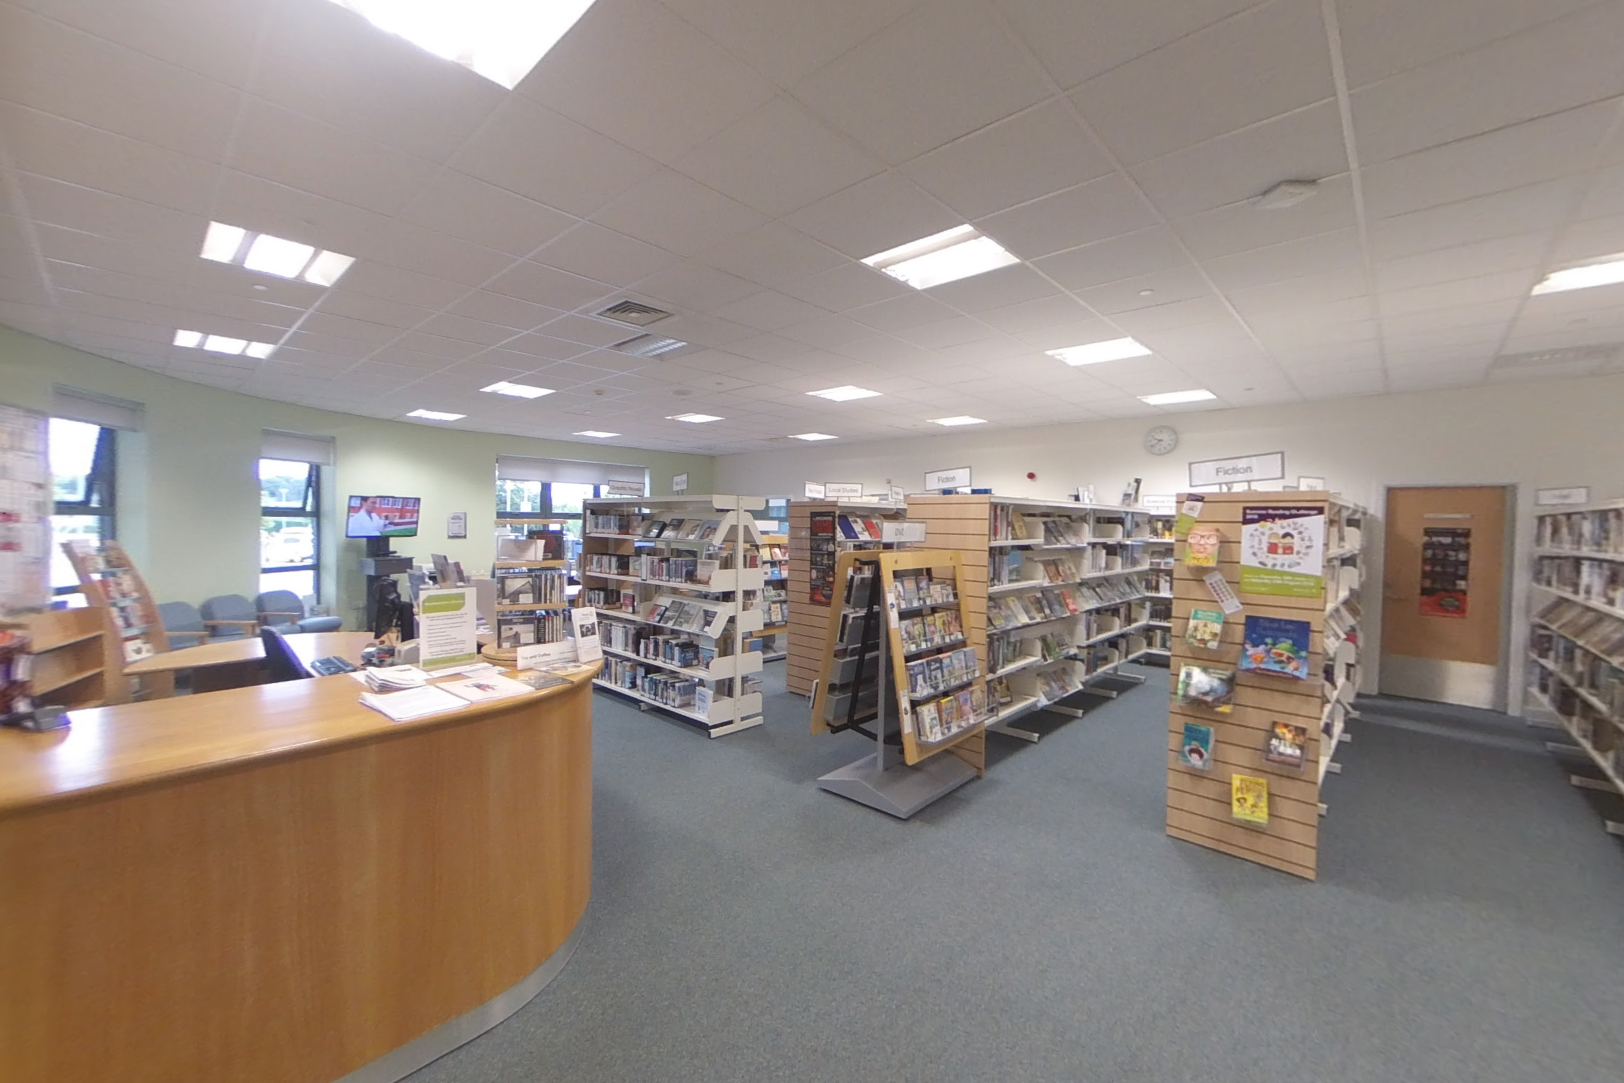 Kintore Library interior